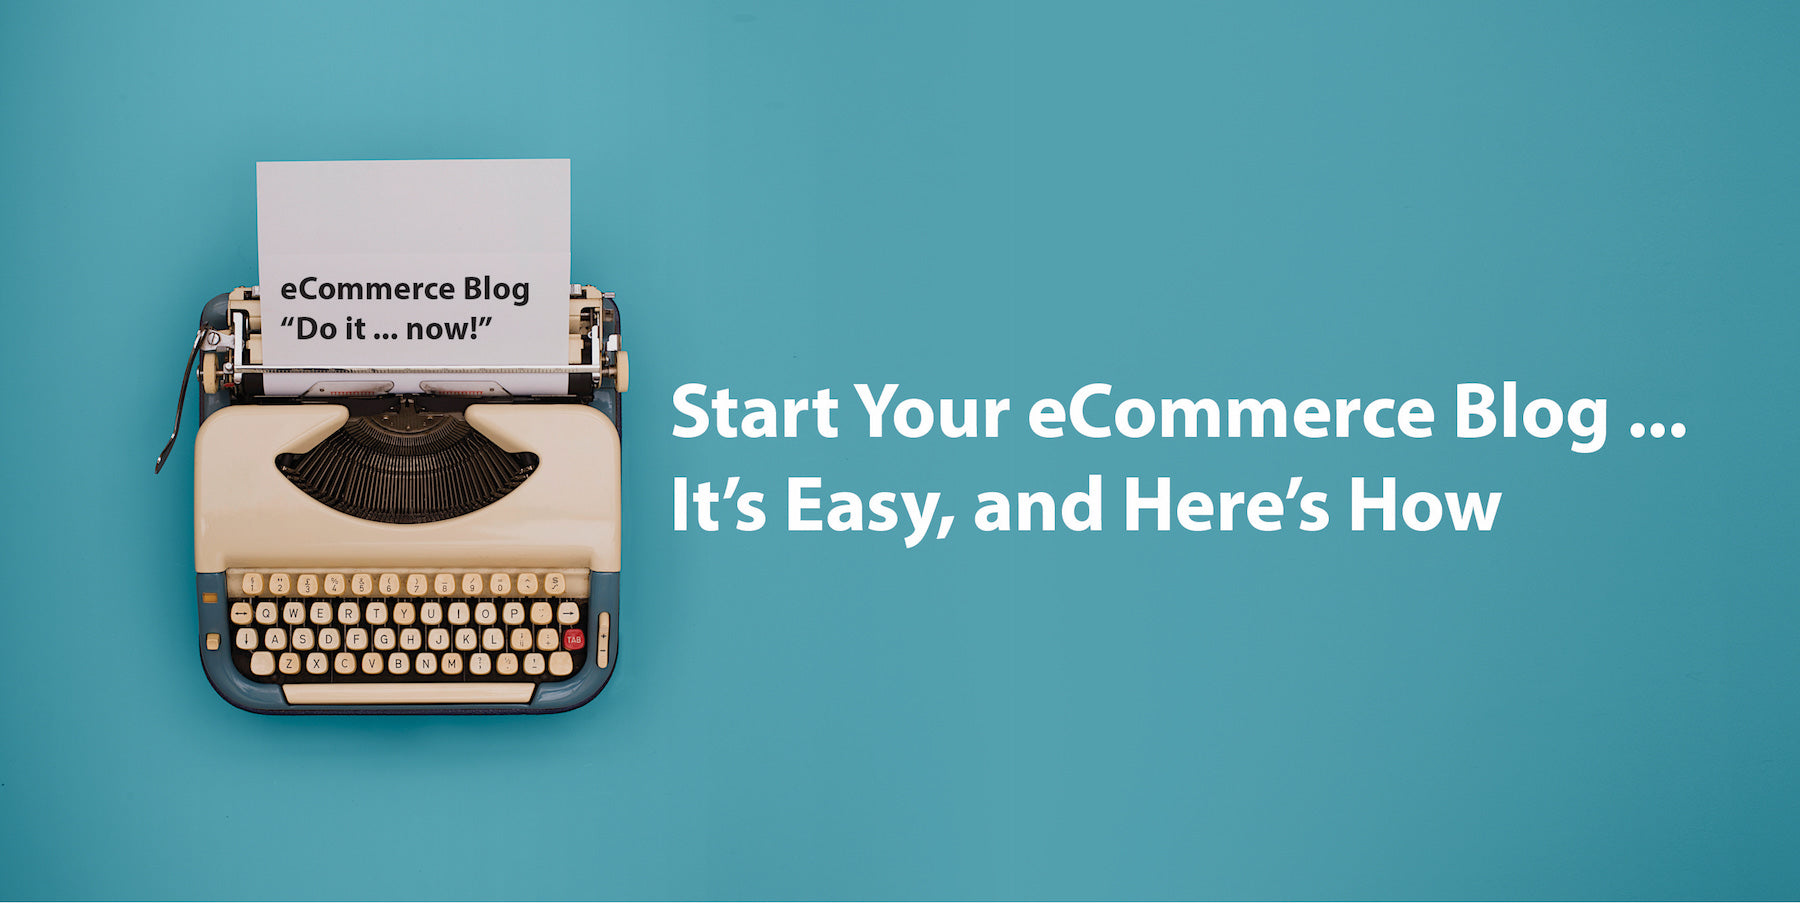 Start Your eCommerce Blog – It's Easy, and Here's How